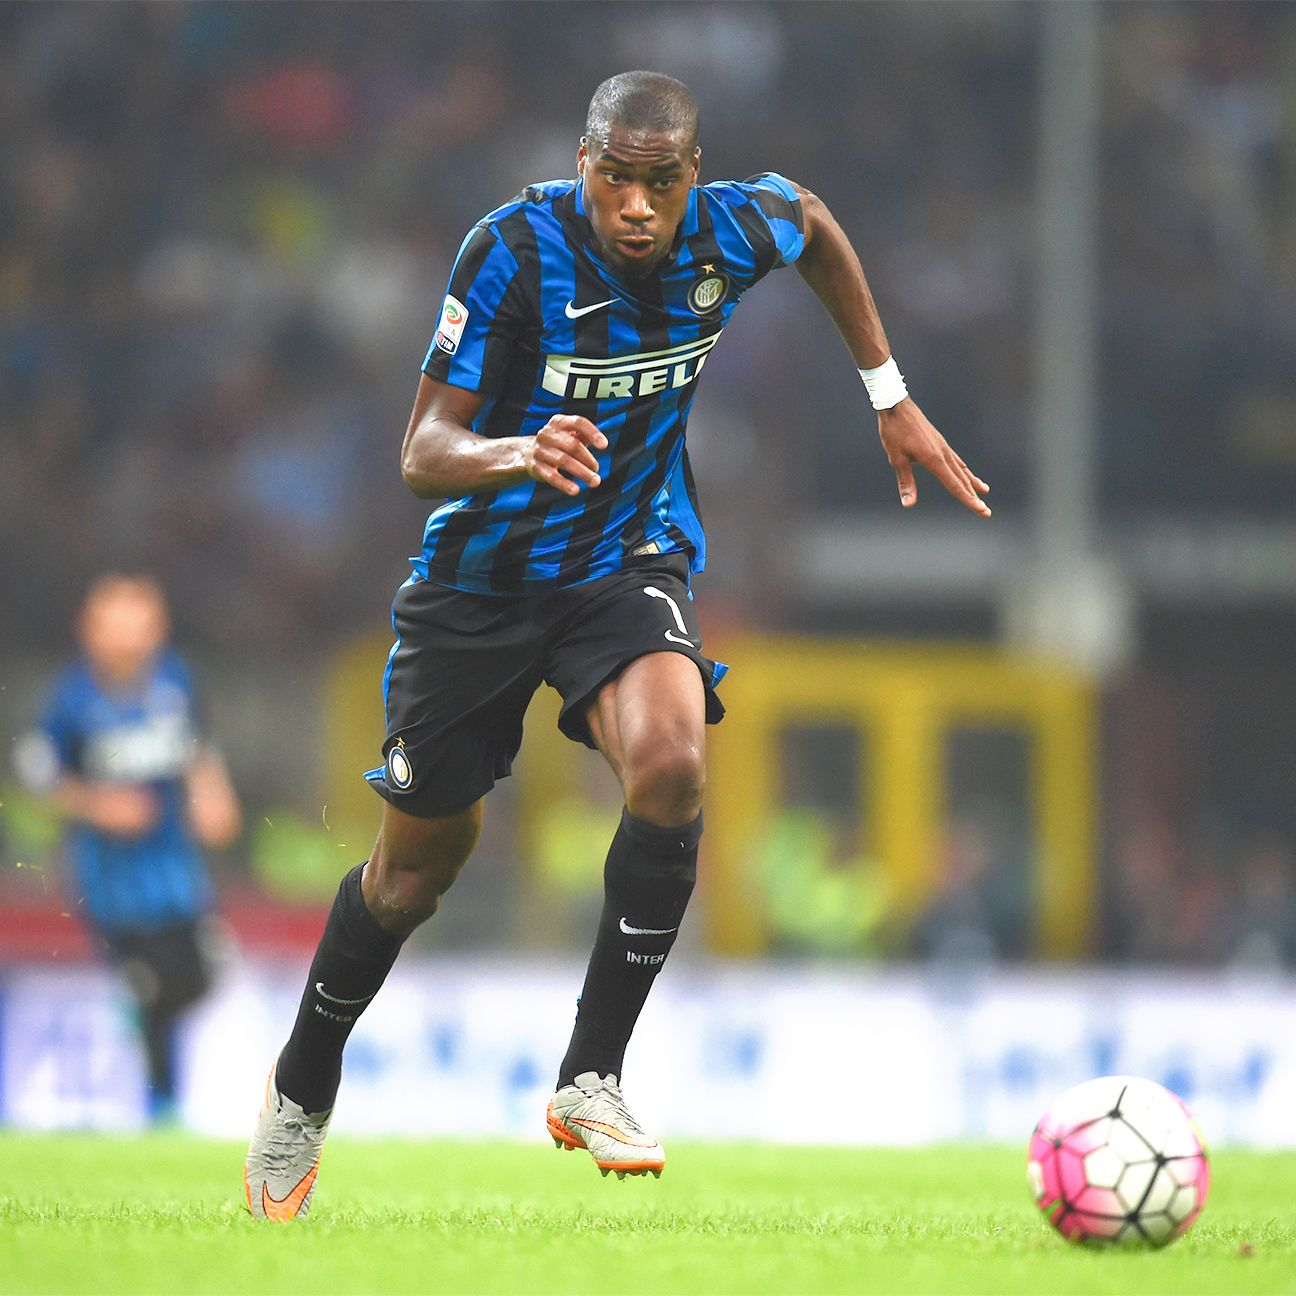 Inter will need a big performance from Geoffrey Kondogbia against Juventus on Sunday.